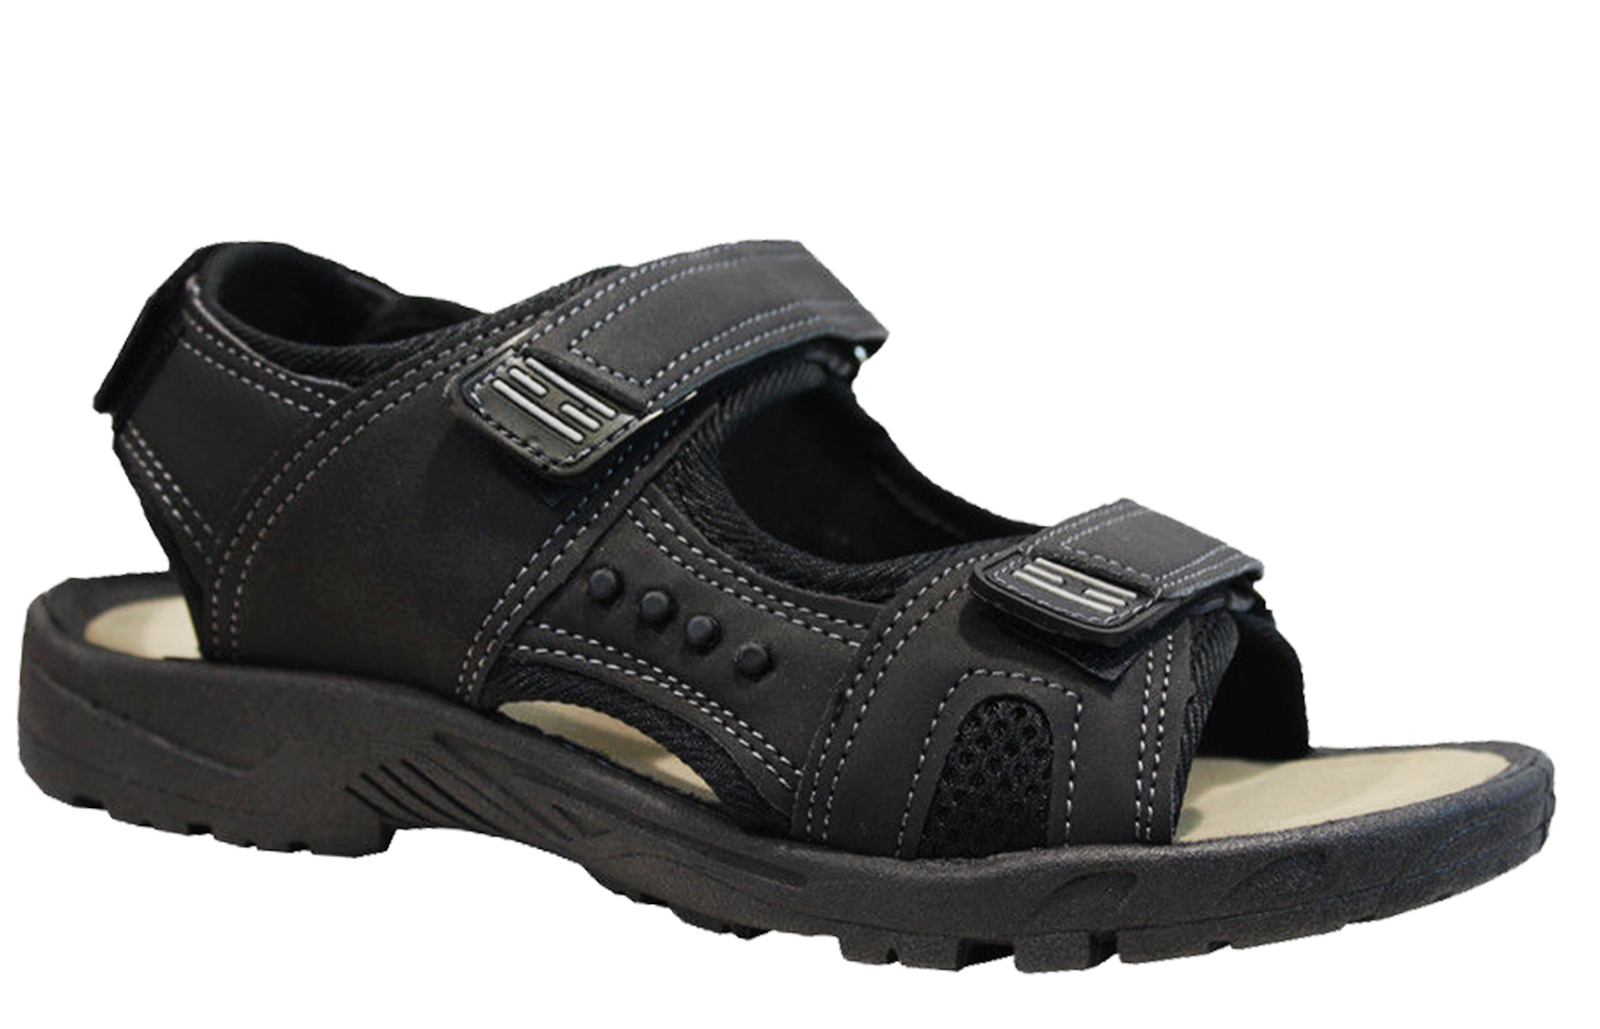 MENS BLACK TOUCH STRAP FLAT WALKING OPEN-TOE SANDALS TRAIL CASUAL SHOES UK 7-12